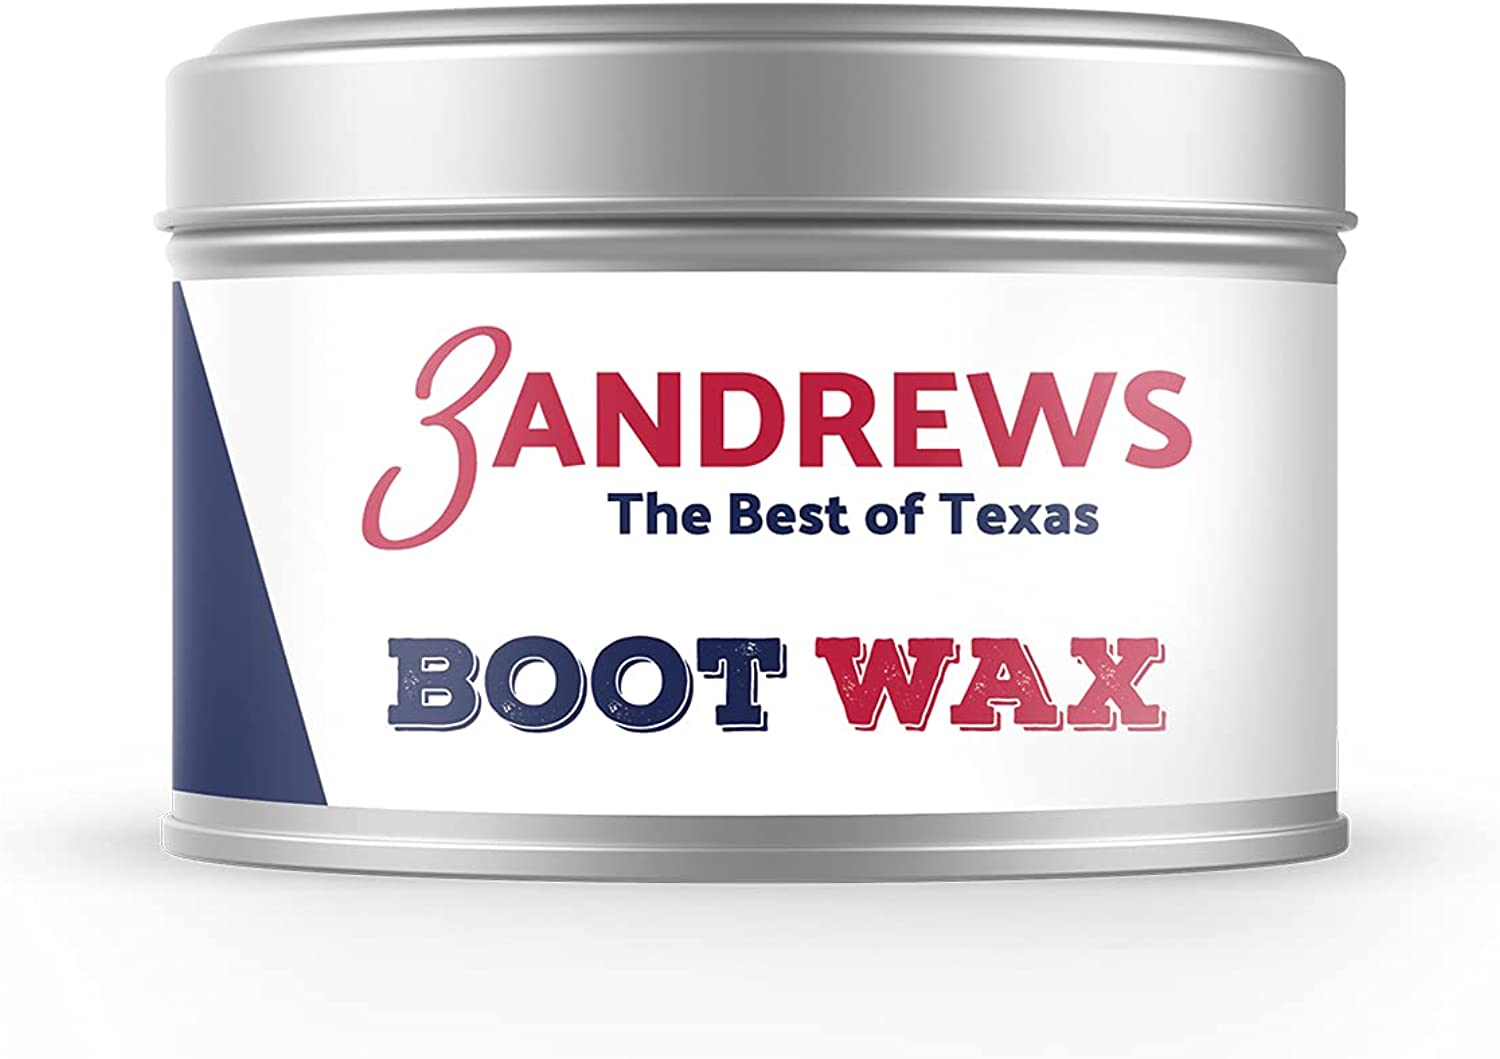 3 Andrews - Boot Wax, Natural Beeswax Boot Polish, Leather Cleaner and Conditioner for Furniture, 7oz